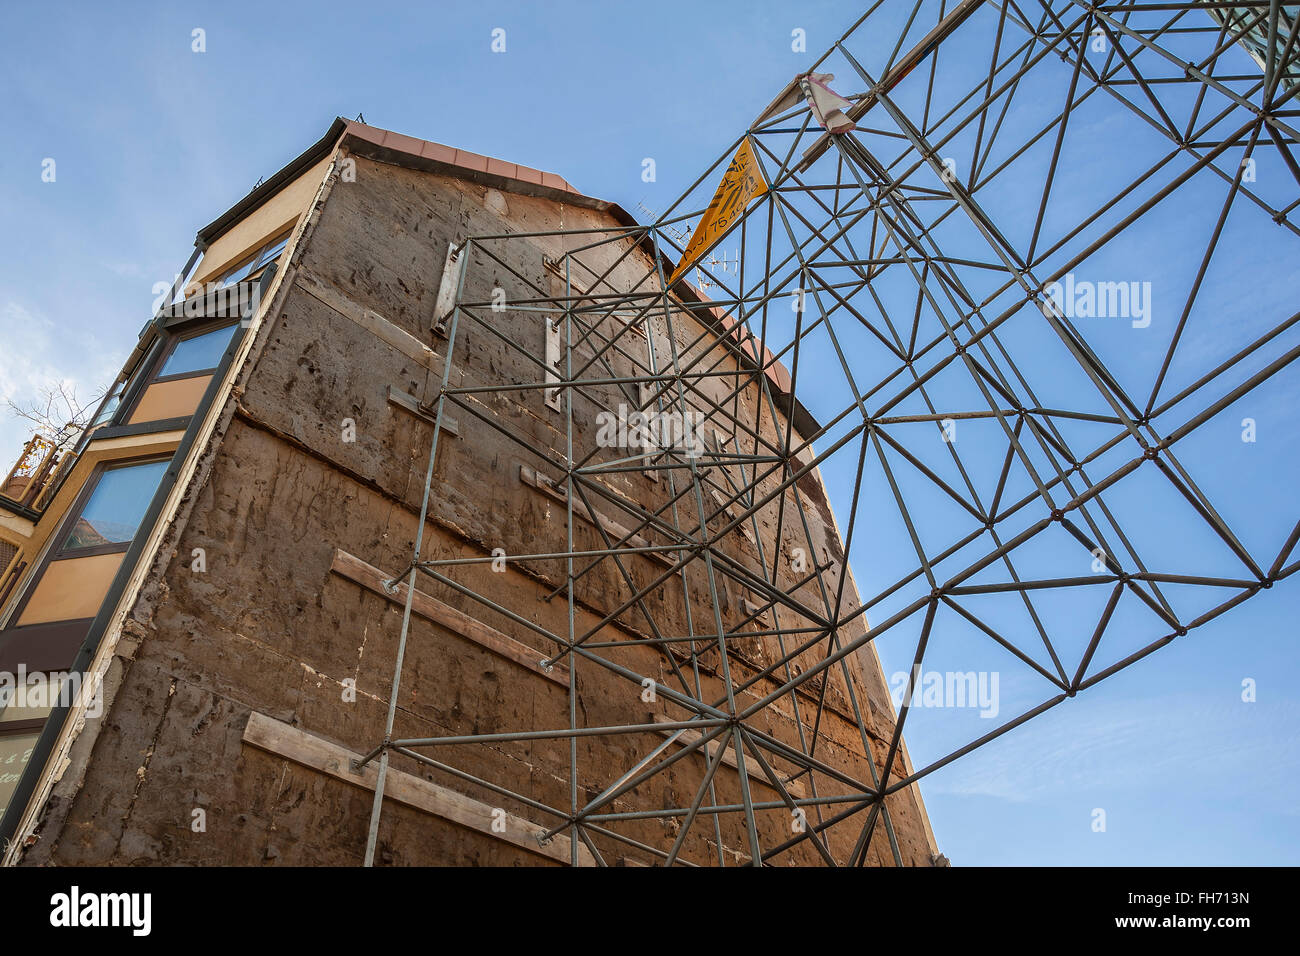 Framework supporting a house wall, Munich, Bavaria, Germany - Stock Image